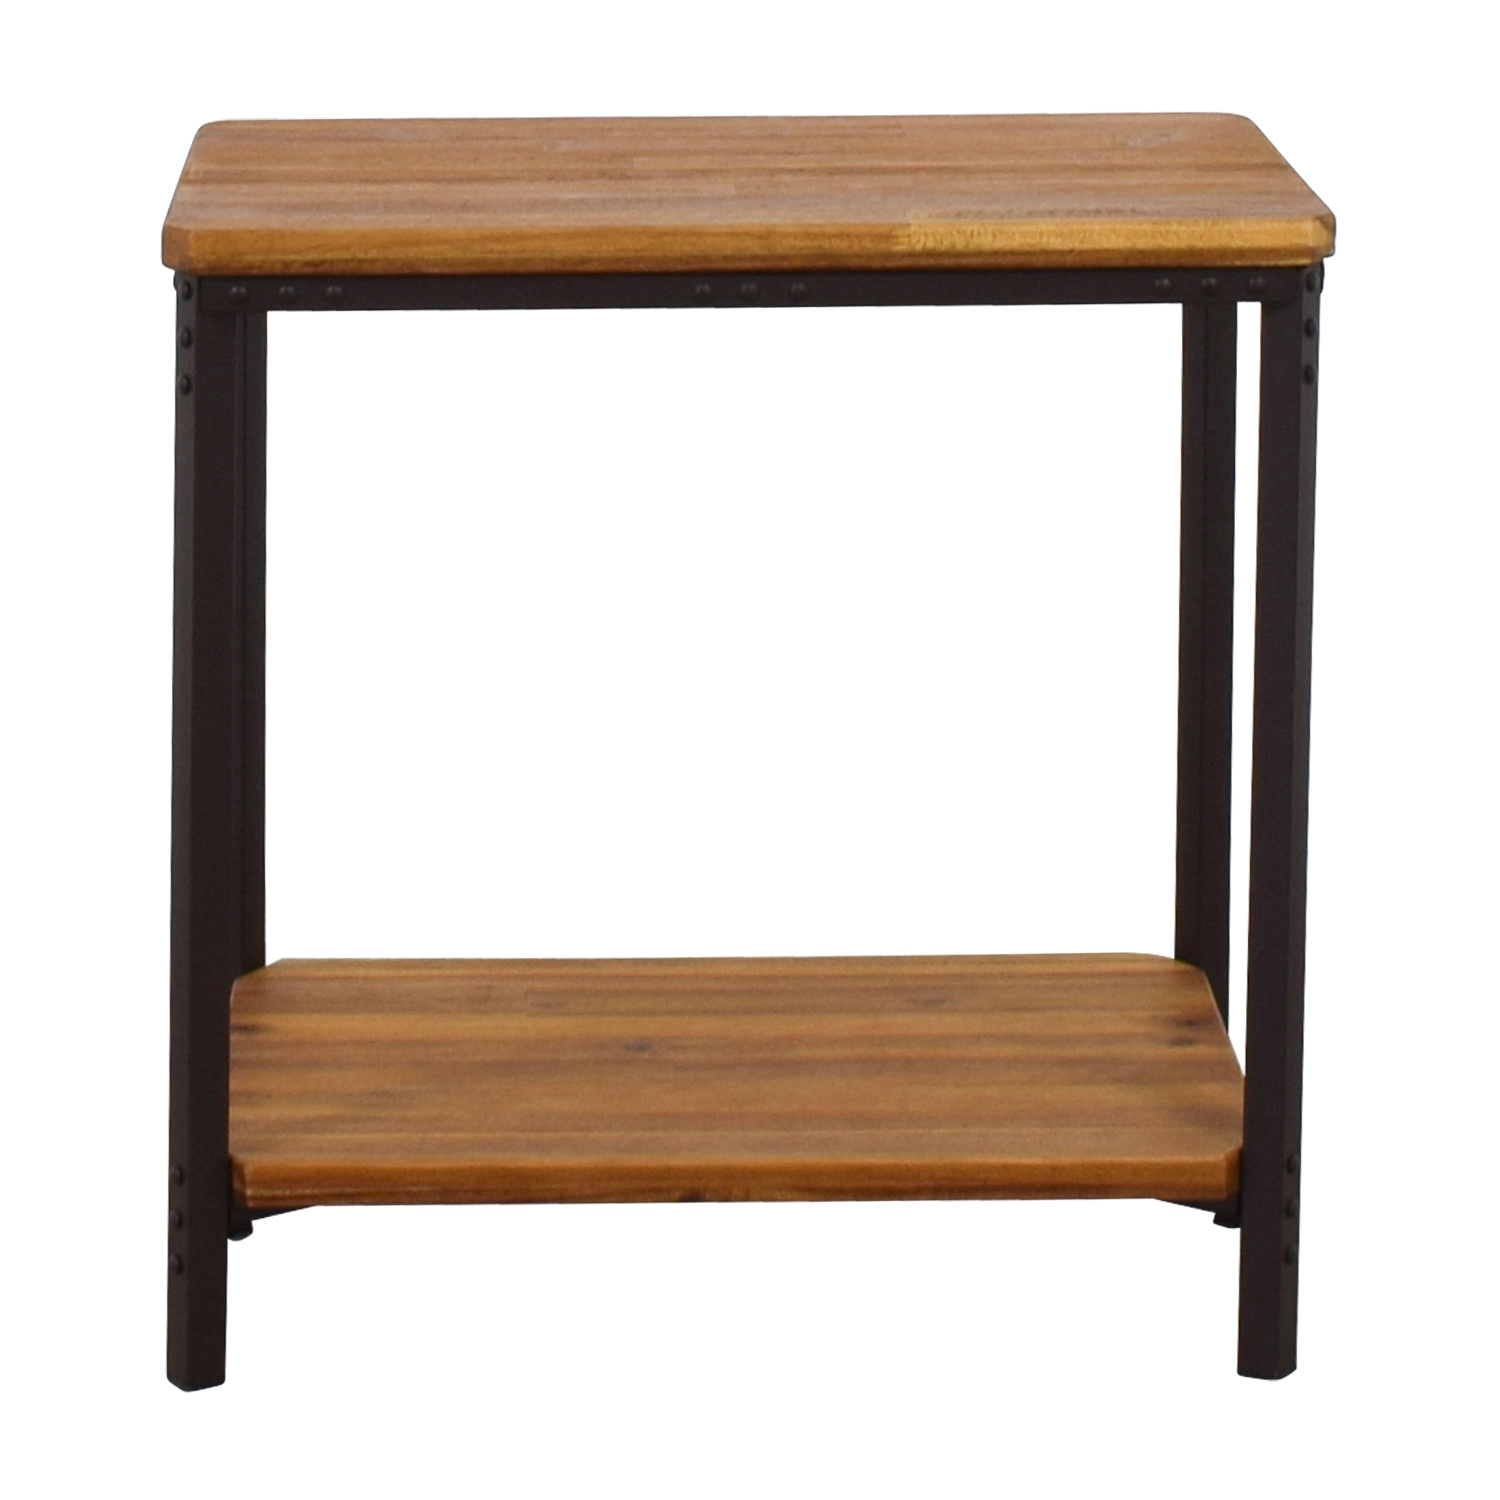 Incroyable Christopher Knight Home Christopher Knight Home Ronan Wood Rustic Metal End  Table Nj ...